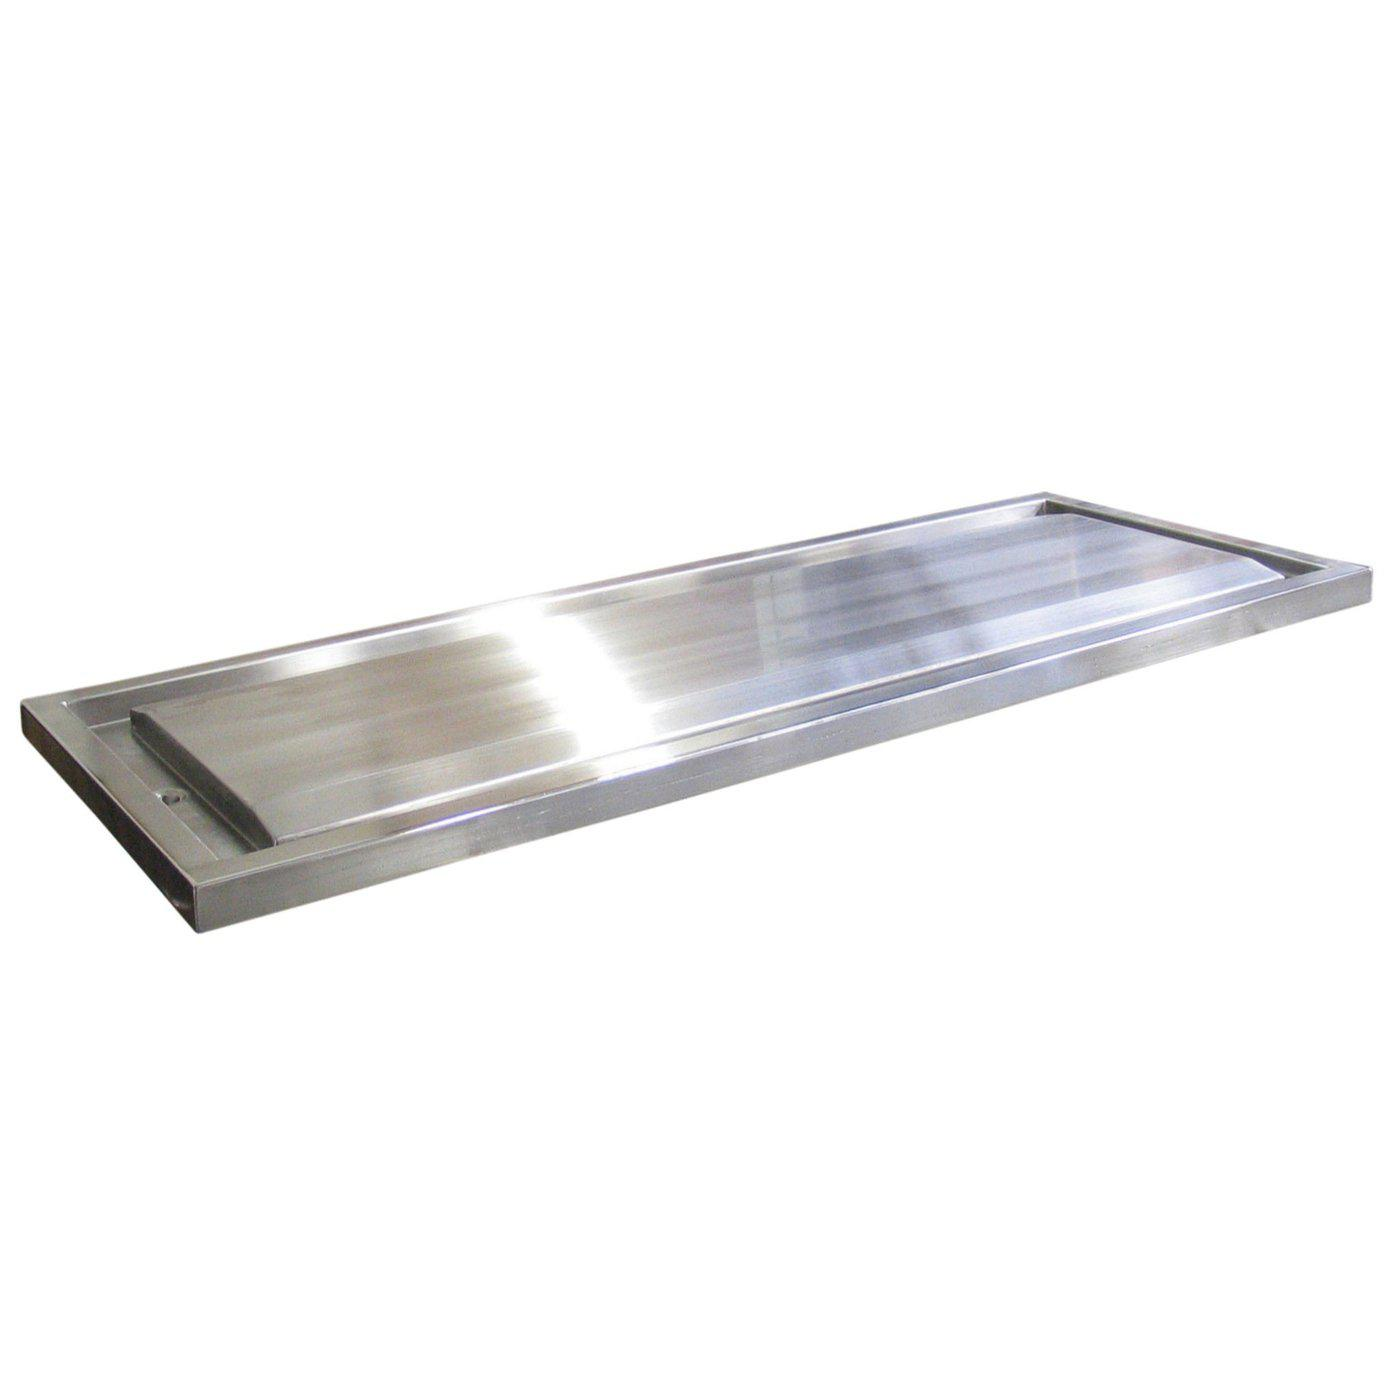 Stainless Steel Autopsy Tray with Trough-Cadaver Trays-Mortech Manufacturing Company Inc. Quality Stainless Steel Autopsy, Morgue, Funeral Home, Necropsy, Veterinary / Anatomy, Dissection Equipment and Accessories